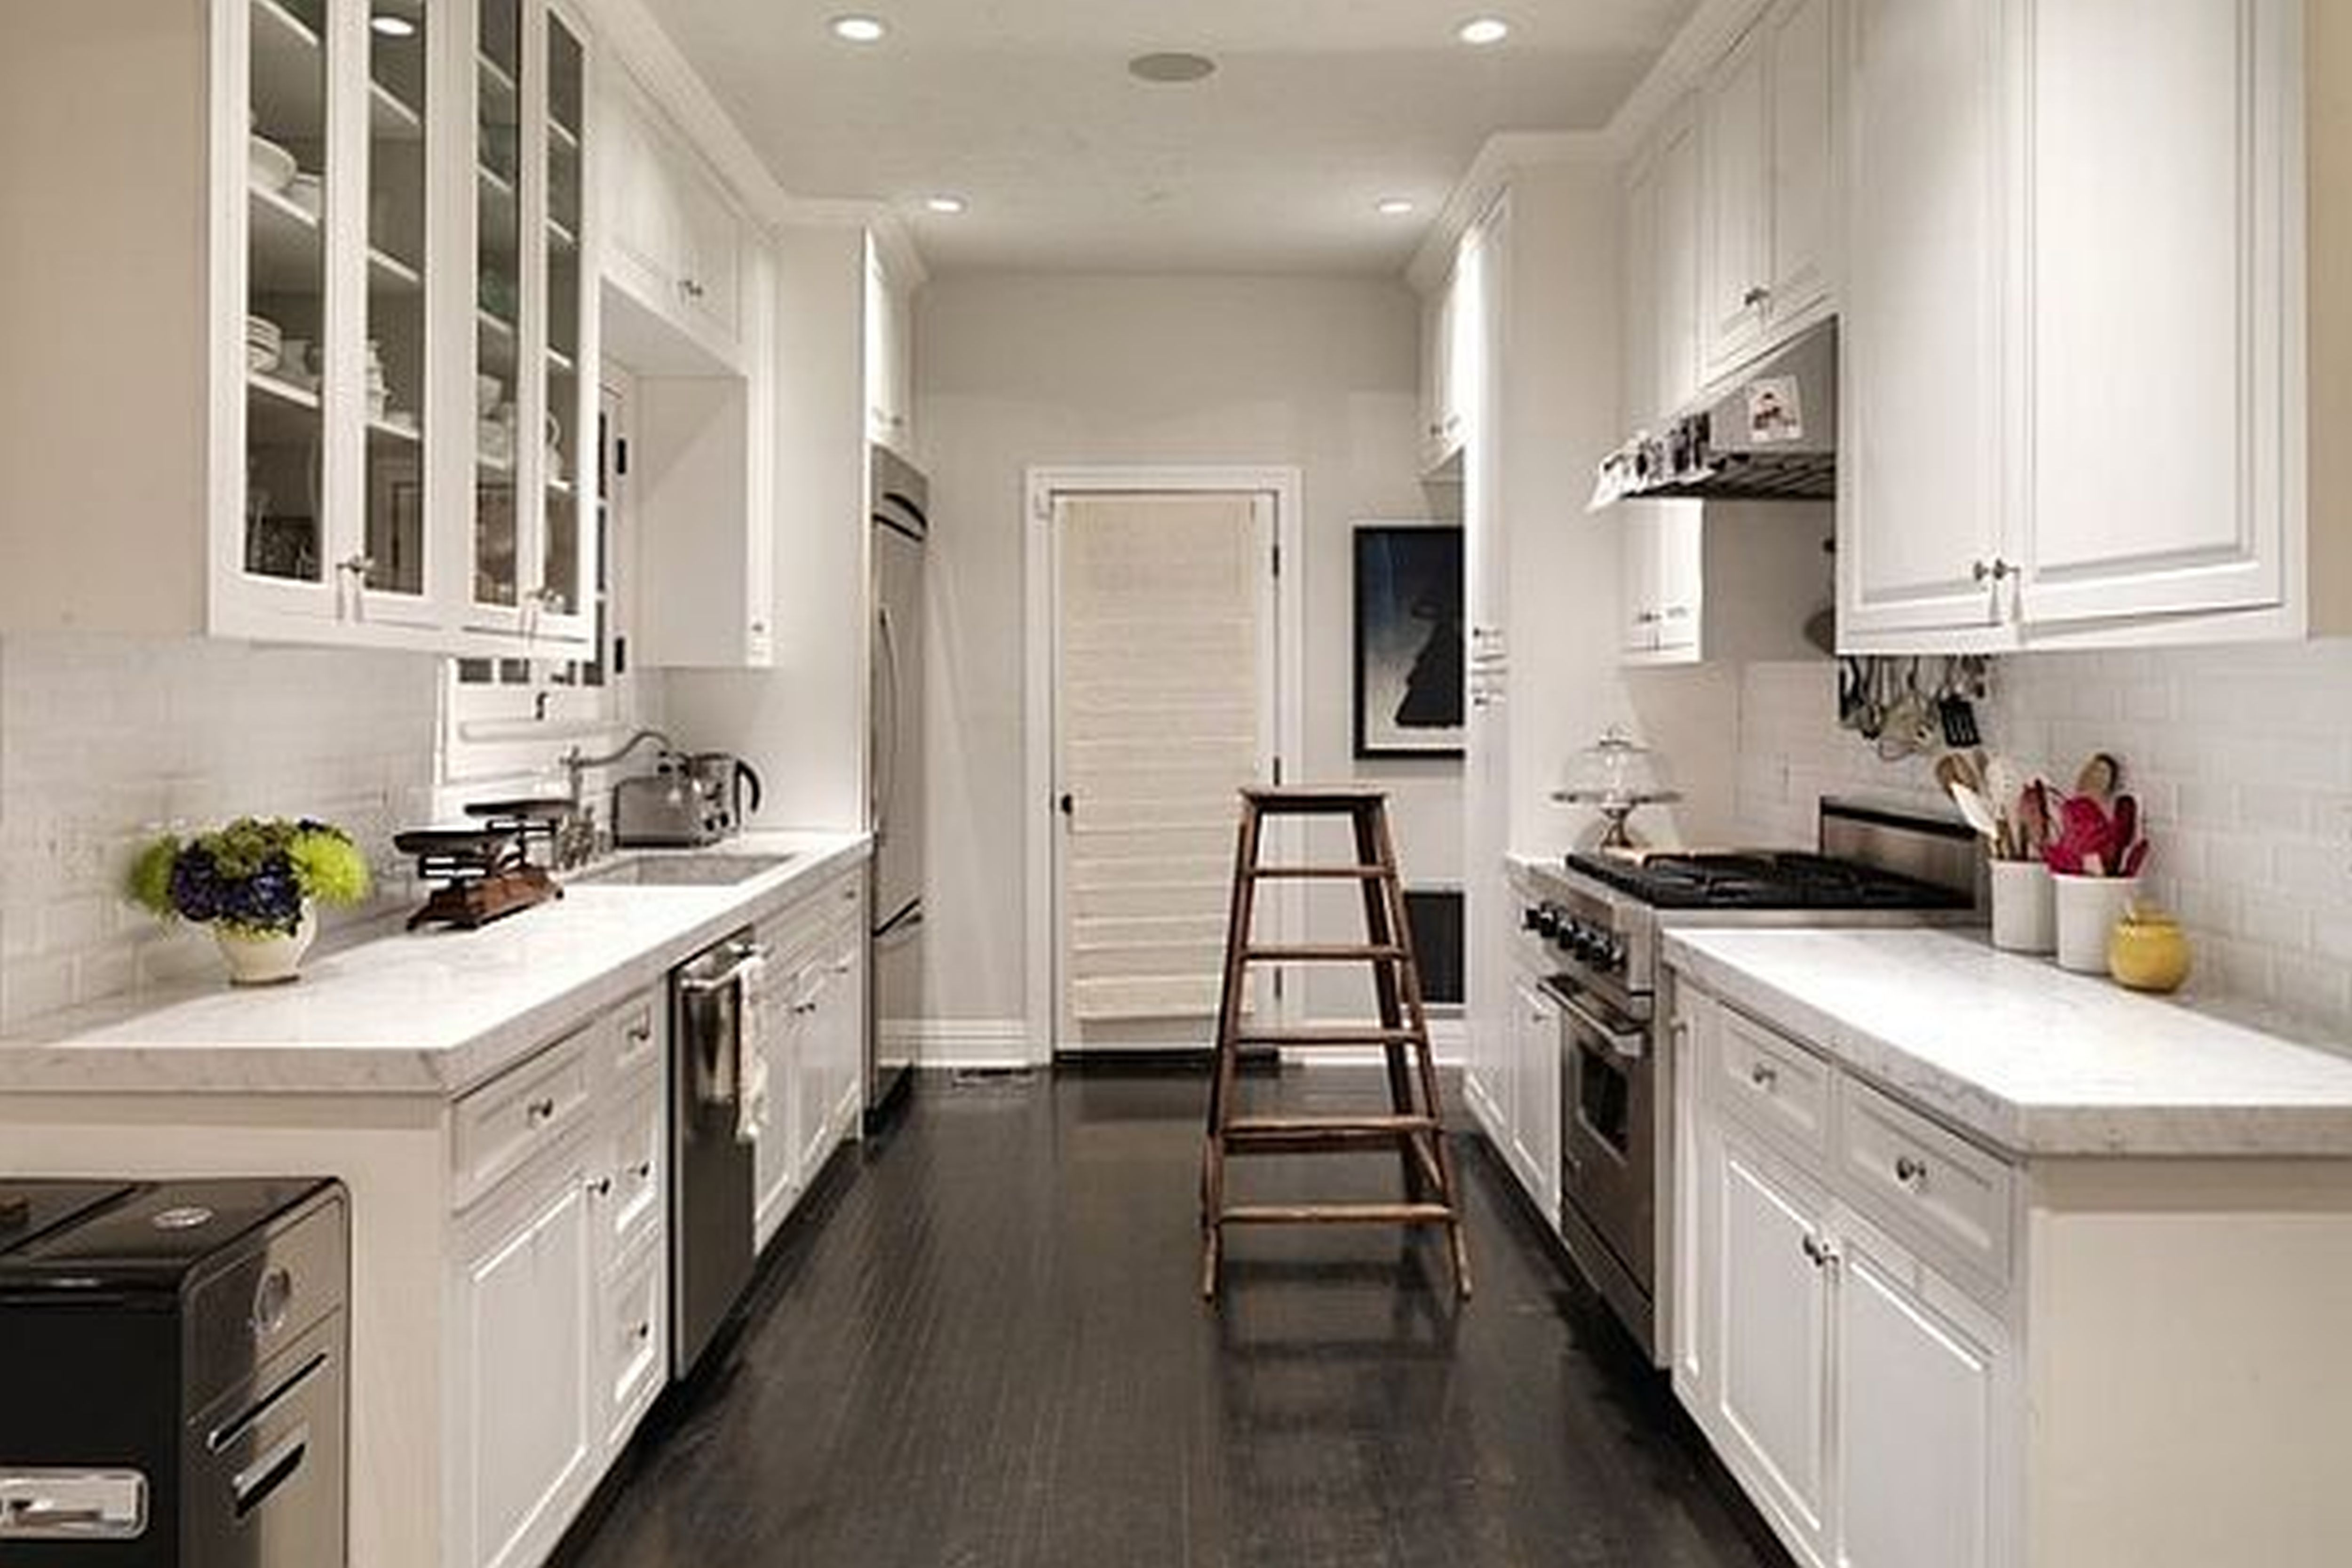 Small Galley Kitchen Remodel Design Ideas With s Galley